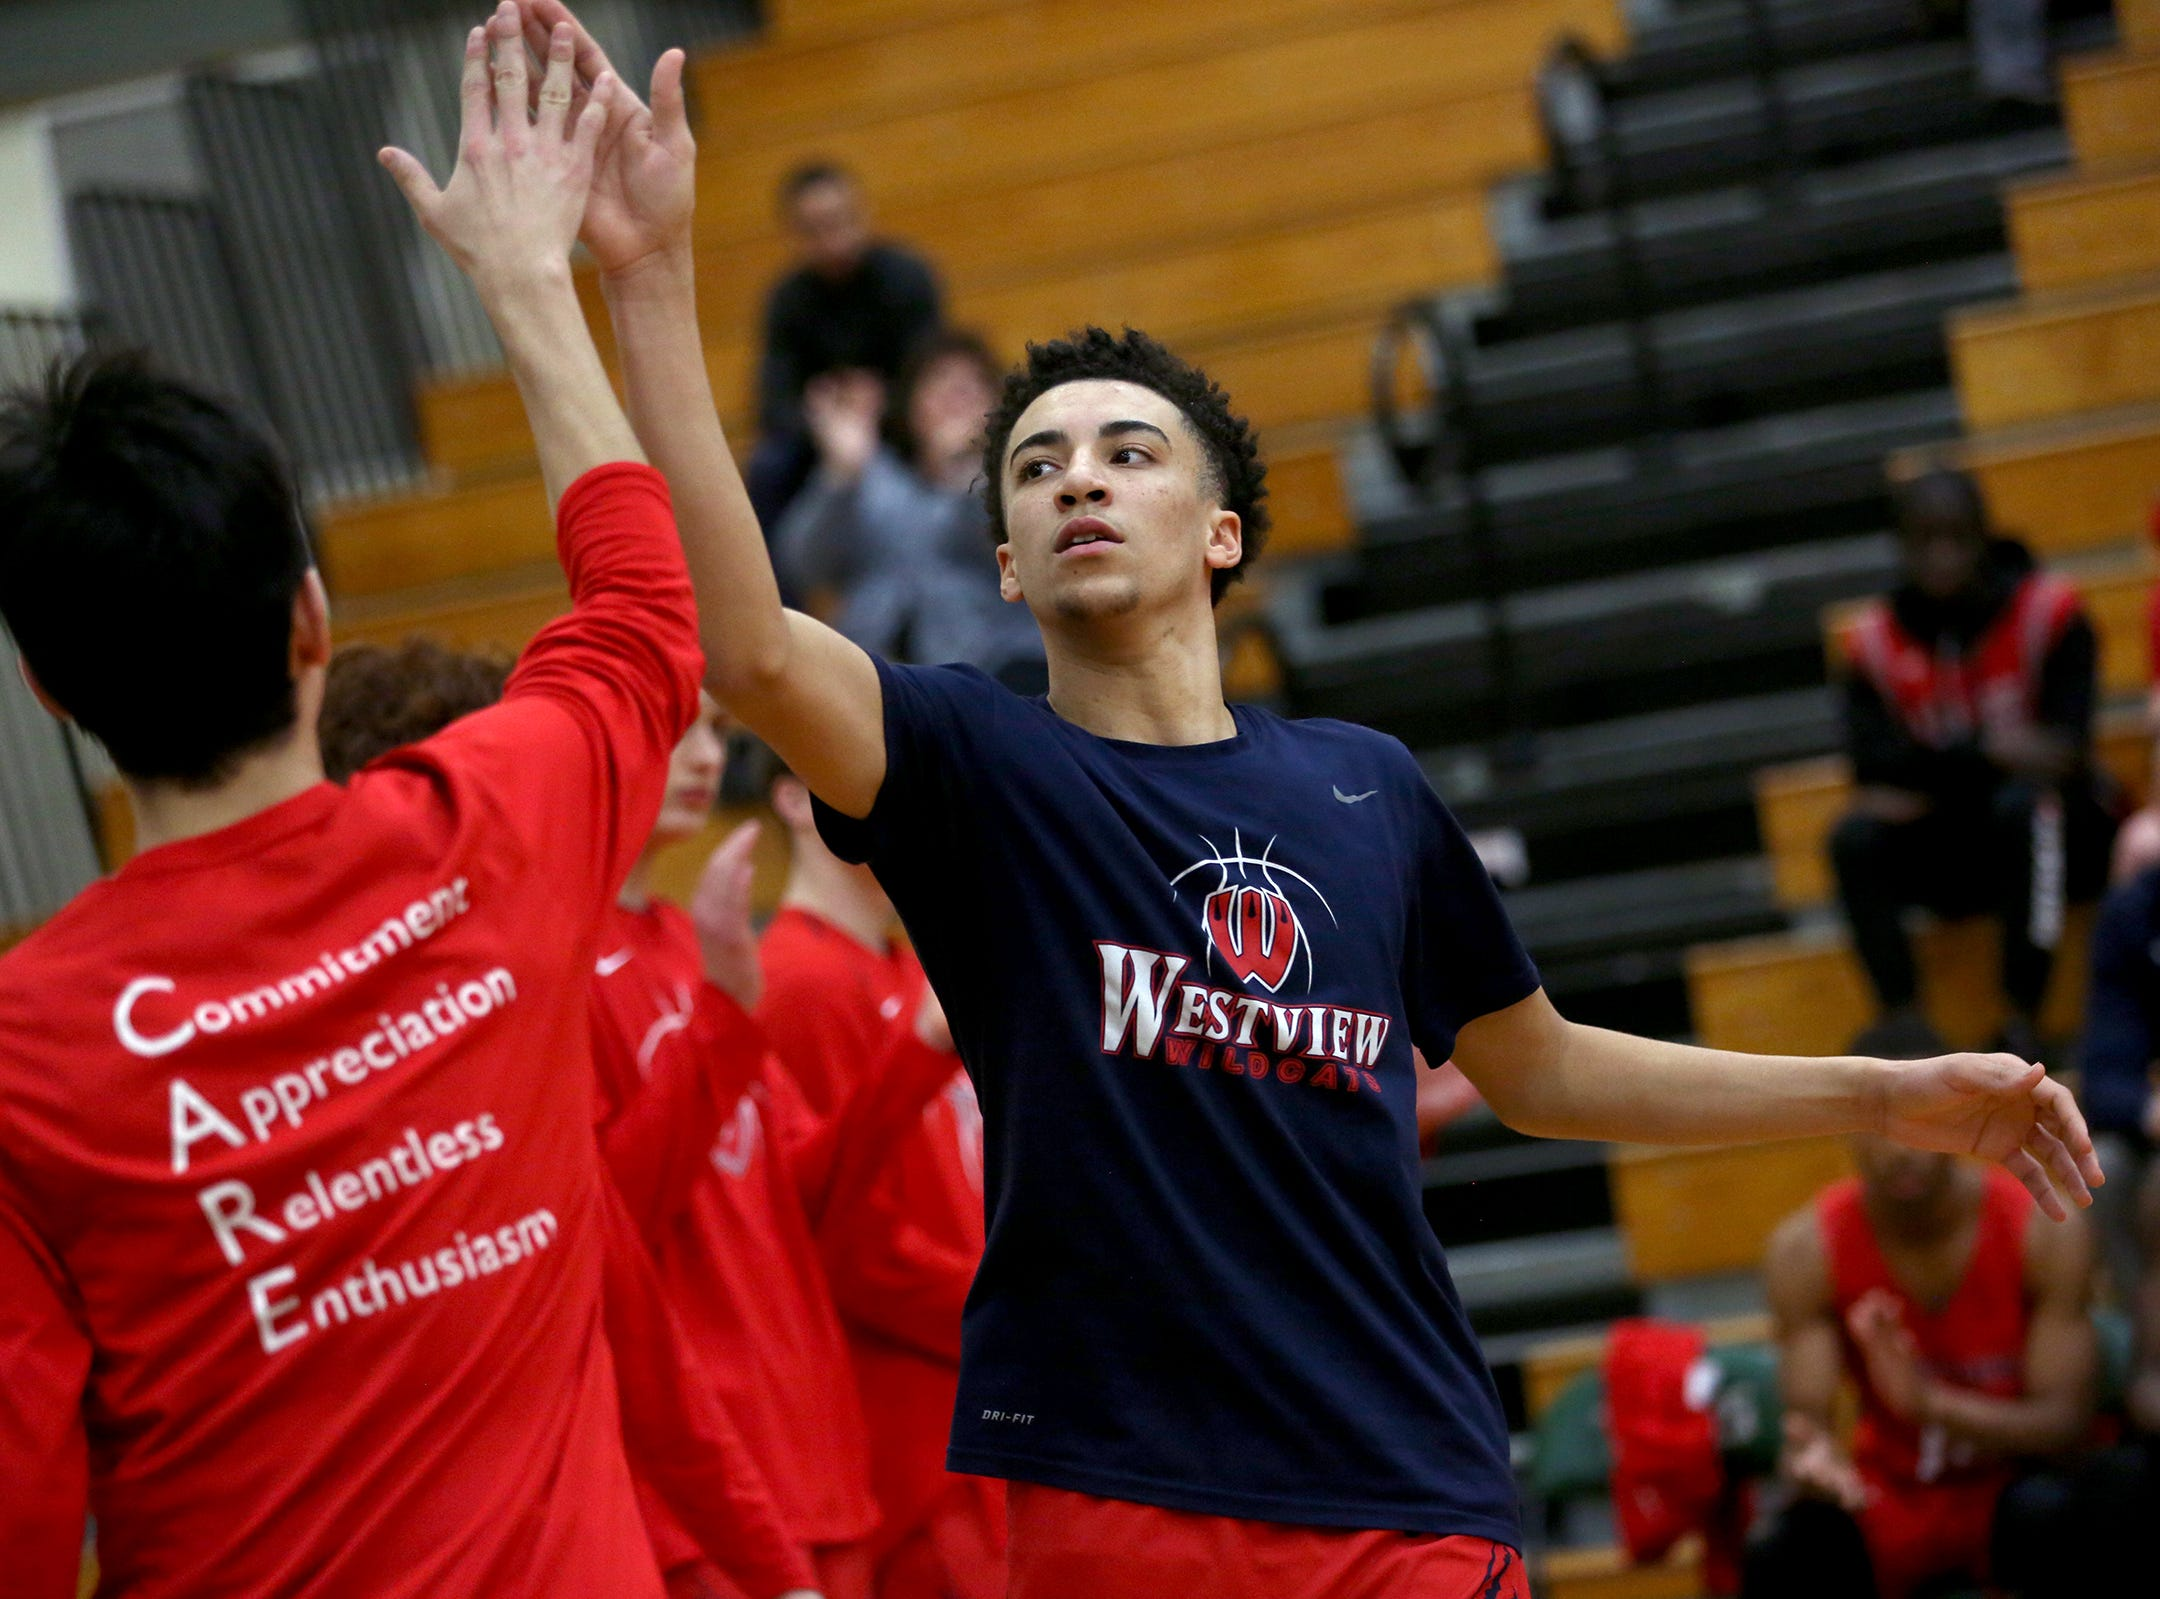 Westviews Kobe Newton (2) is introduced during the starting lineup before the West Salem vs. Westview 6A Boys Basketball State Championships first round at West Salem High School in Salem on Tuesday, Feb. 26, 2019.